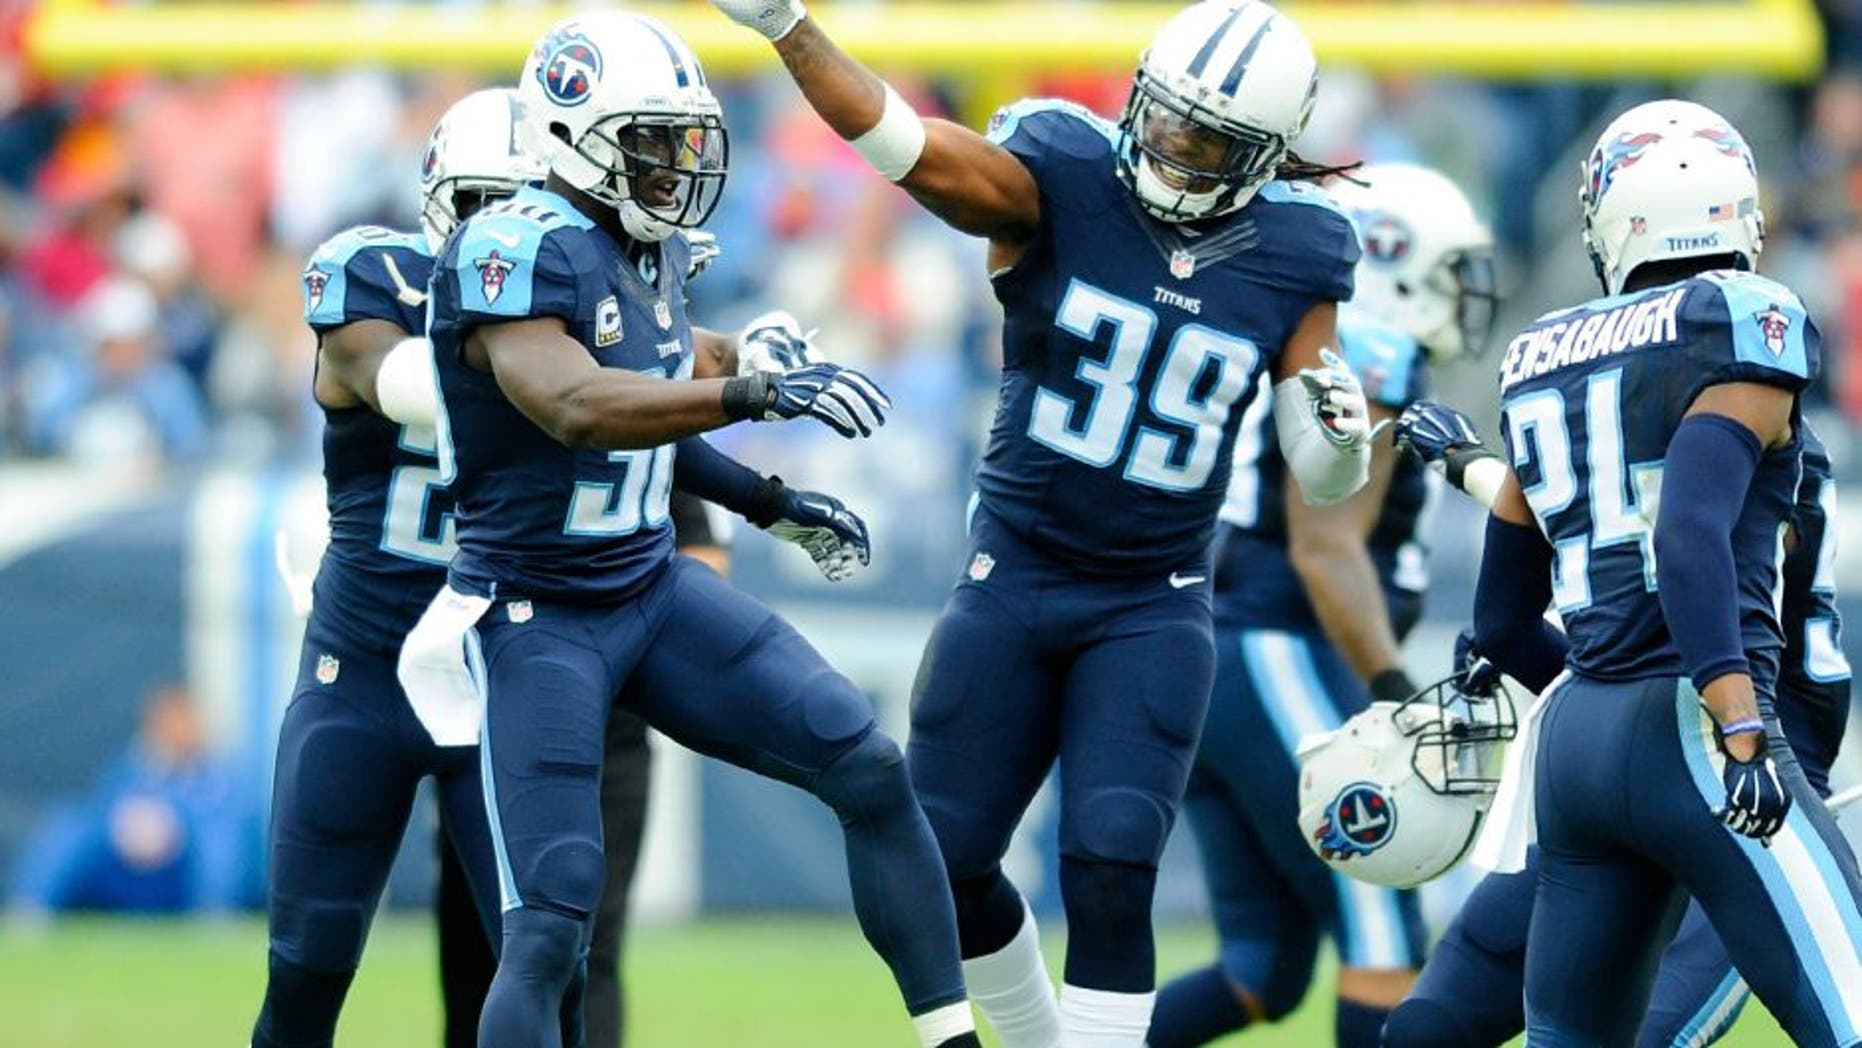 Oct 25, 2015; Nashville, TN, USA; Tennessee Titans cornerback Jason McCourty (30) is congratulated by strong safety Daimion Stafford (39) after a fourth down defensive stop during the first half against the Atlanta Falcons at Nissan Stadium. Mandatory Credit: Christopher Hanewinckel-USA TODAY Sports